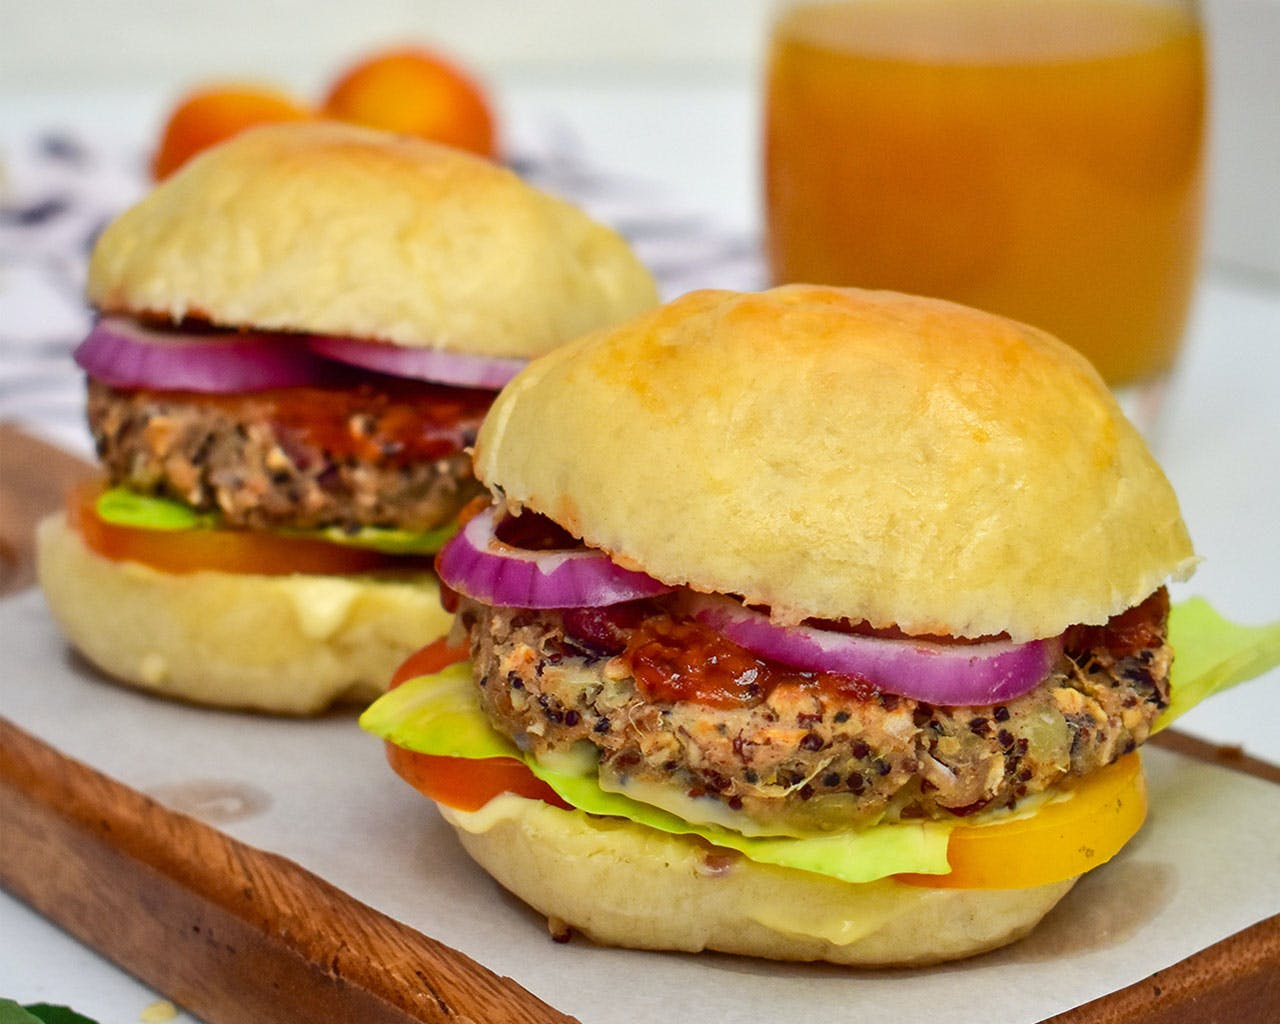 Enjoy Your Rice and Burger Without The Guilt: 6 Healthy Food Alternatives That Taste Just As Great